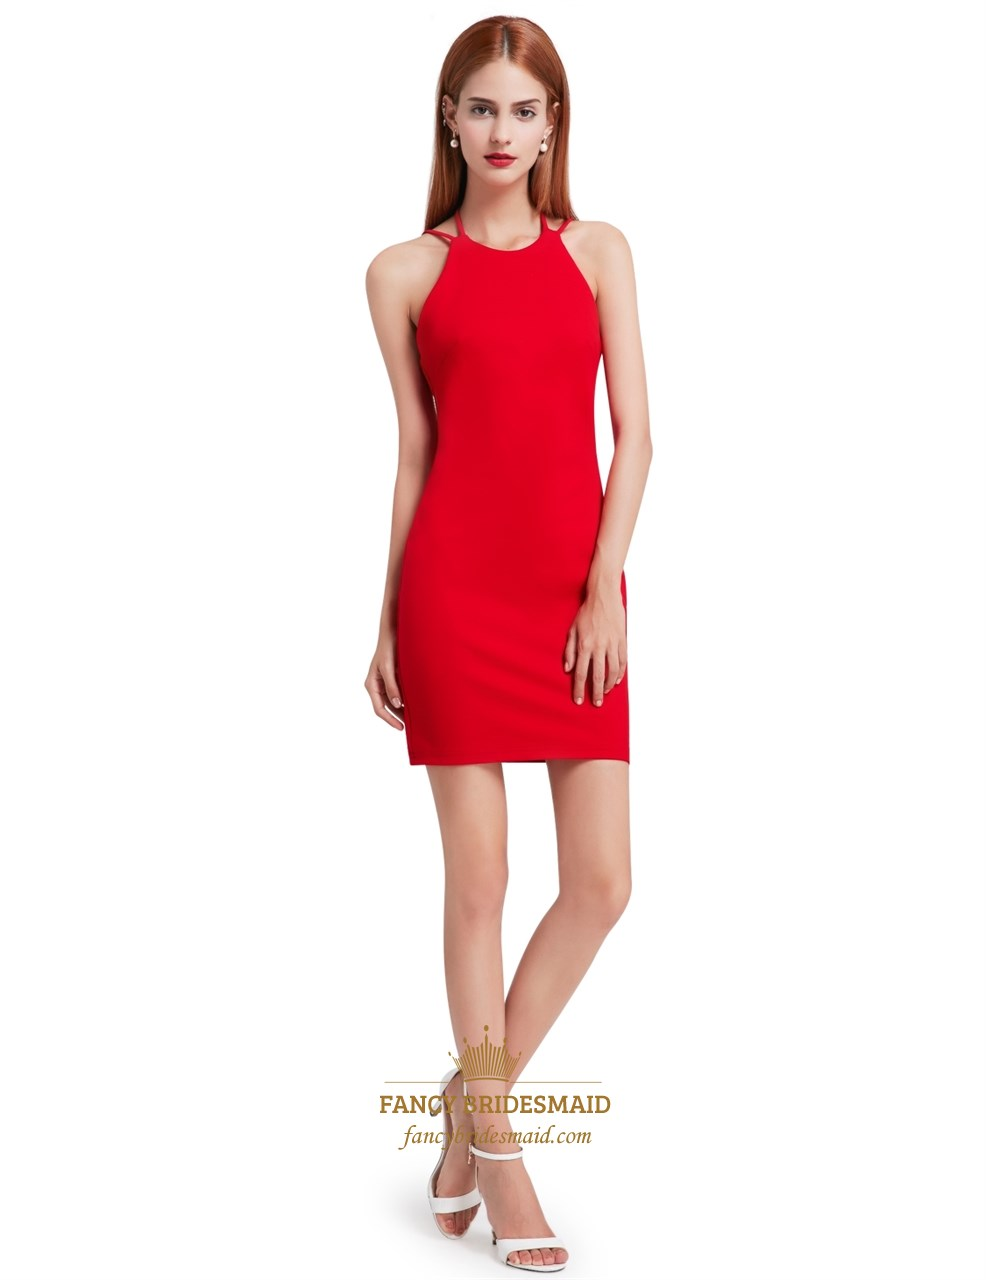 bde10d5dd6b80c Red Simple Sleeveless Short Sheath Cocktail Dress With Open Back SKU -FS2890